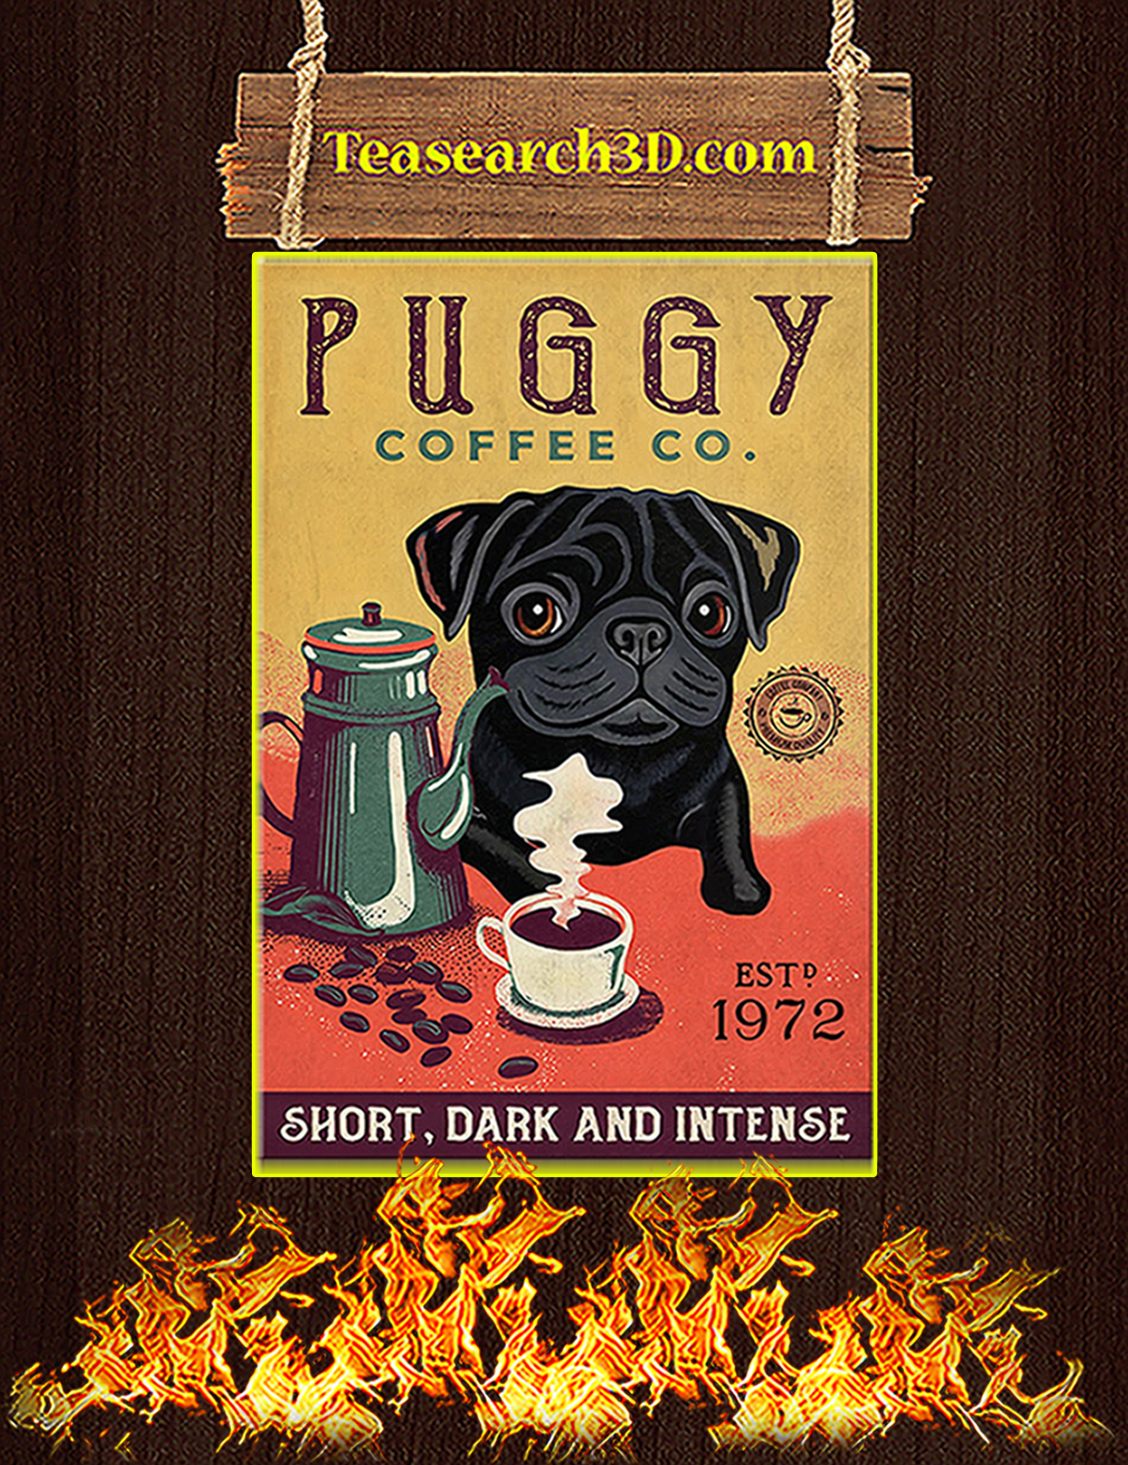 Puggy coffee co short dark and intense poster A3